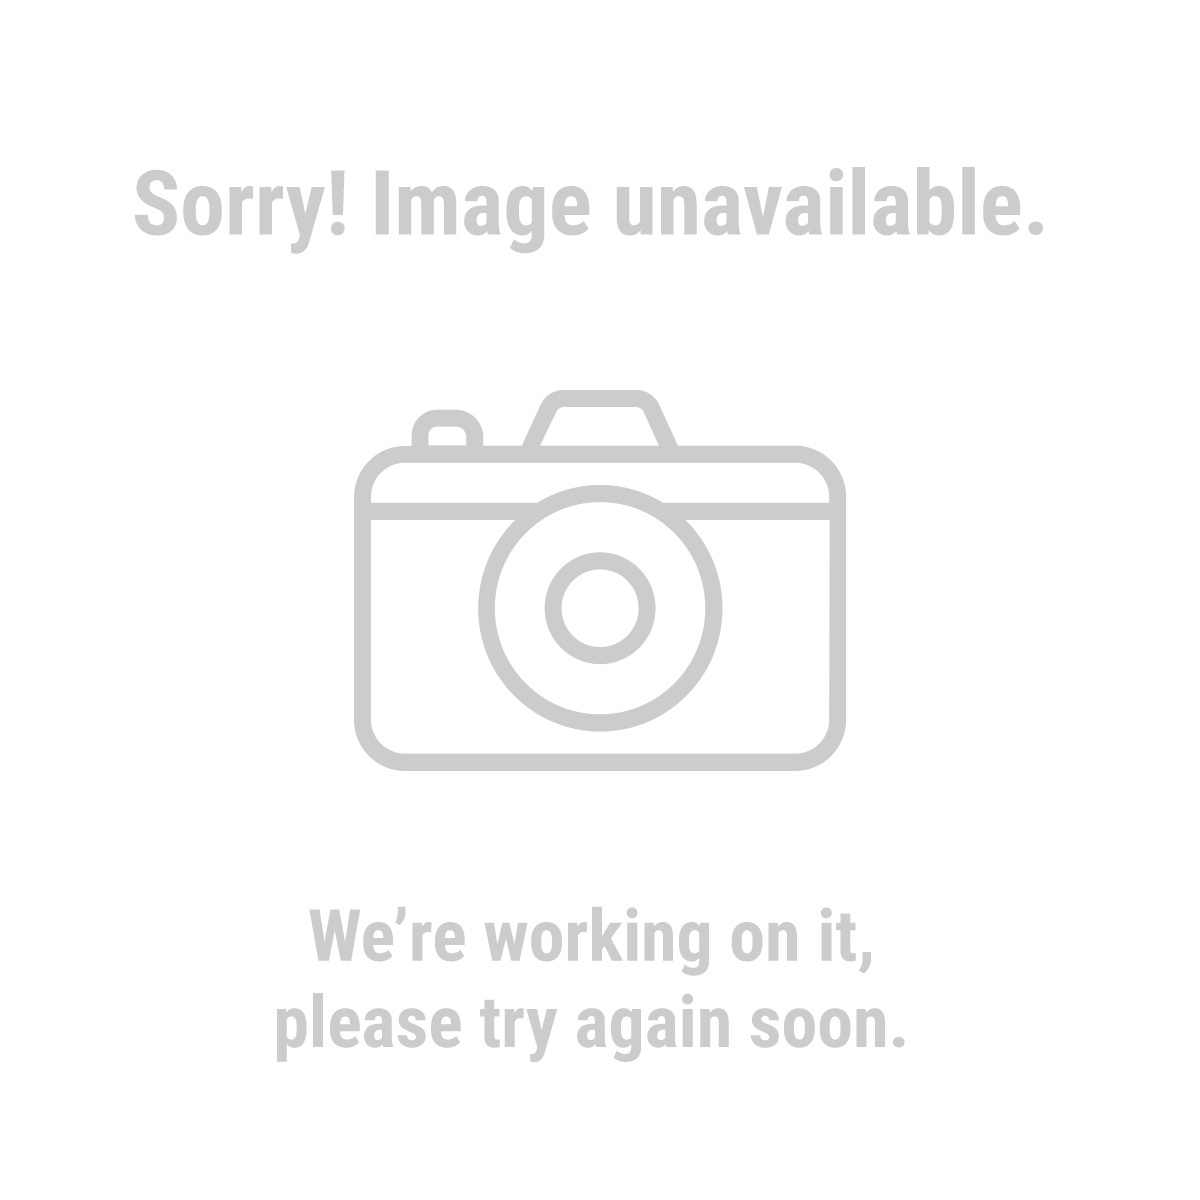 9000 lbs  off-road vehicle electric winch with automatic load-holding  brake  badland